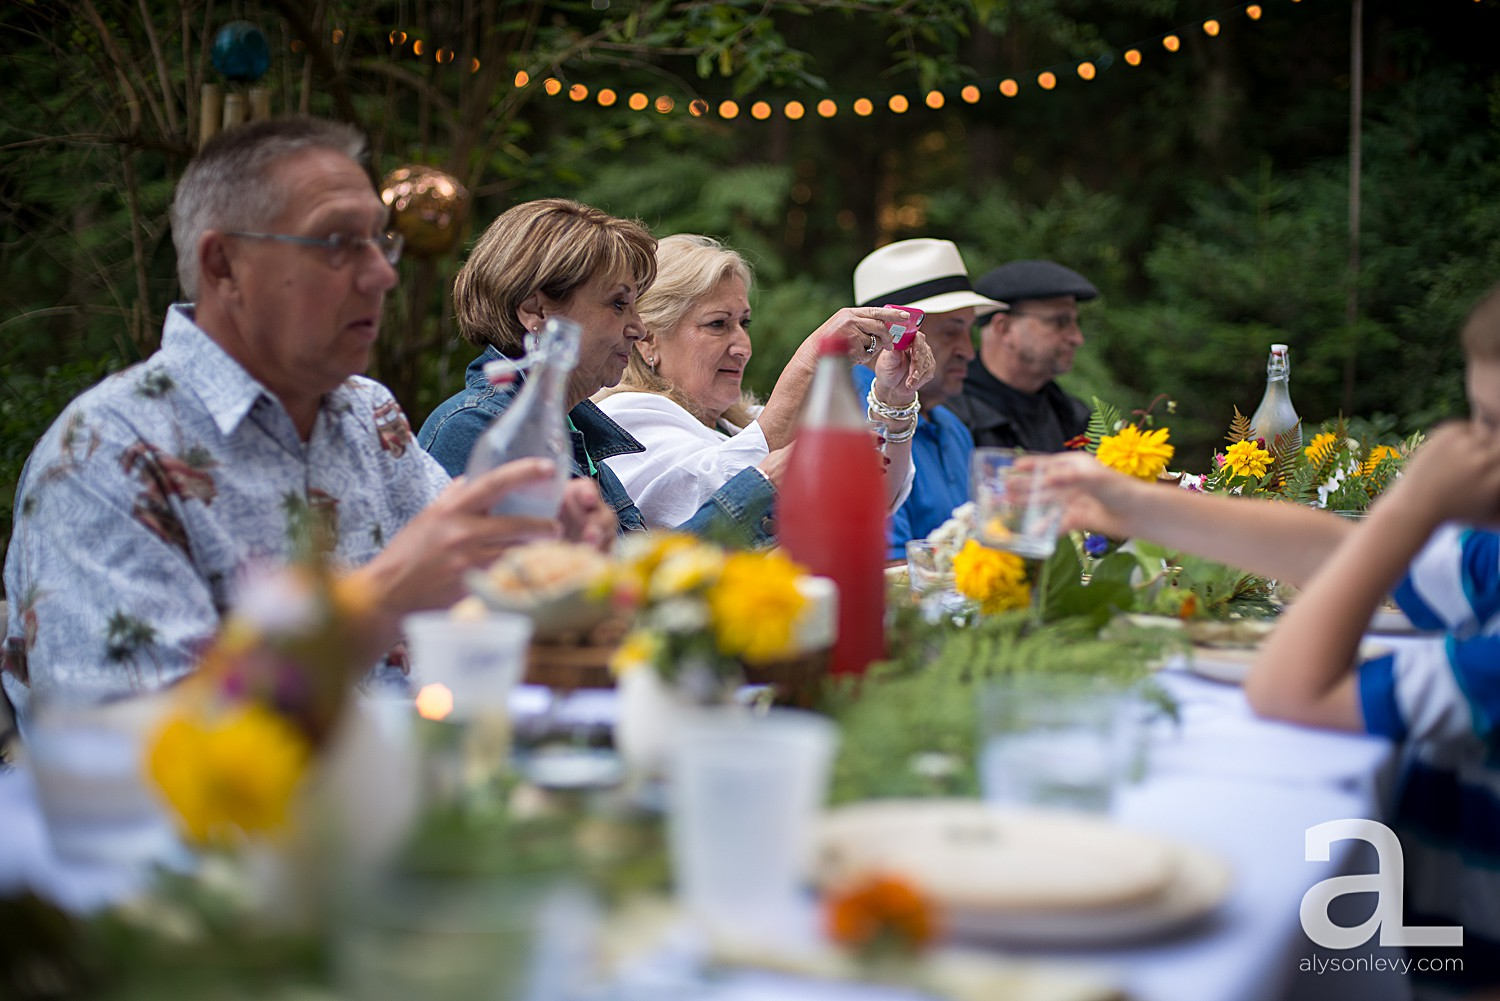 Backyard-Rehearsal-Dinner-Photography_0013.jpg